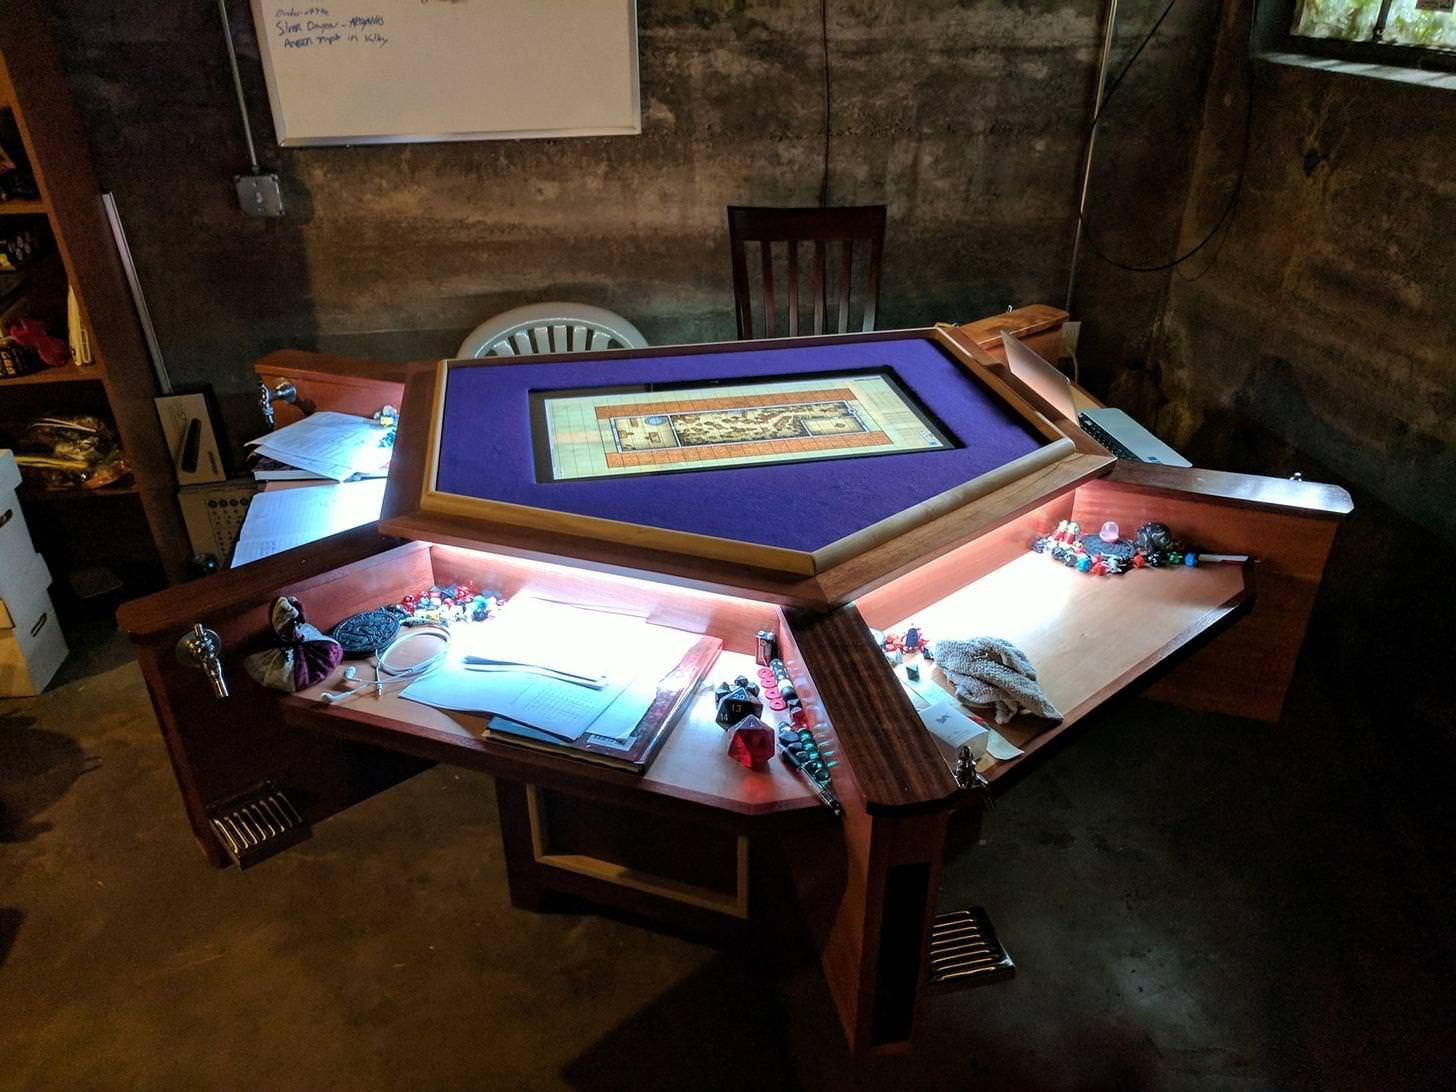 Oc My Group S Gaming Table Gaming Table Diy Dnd Table Table Games